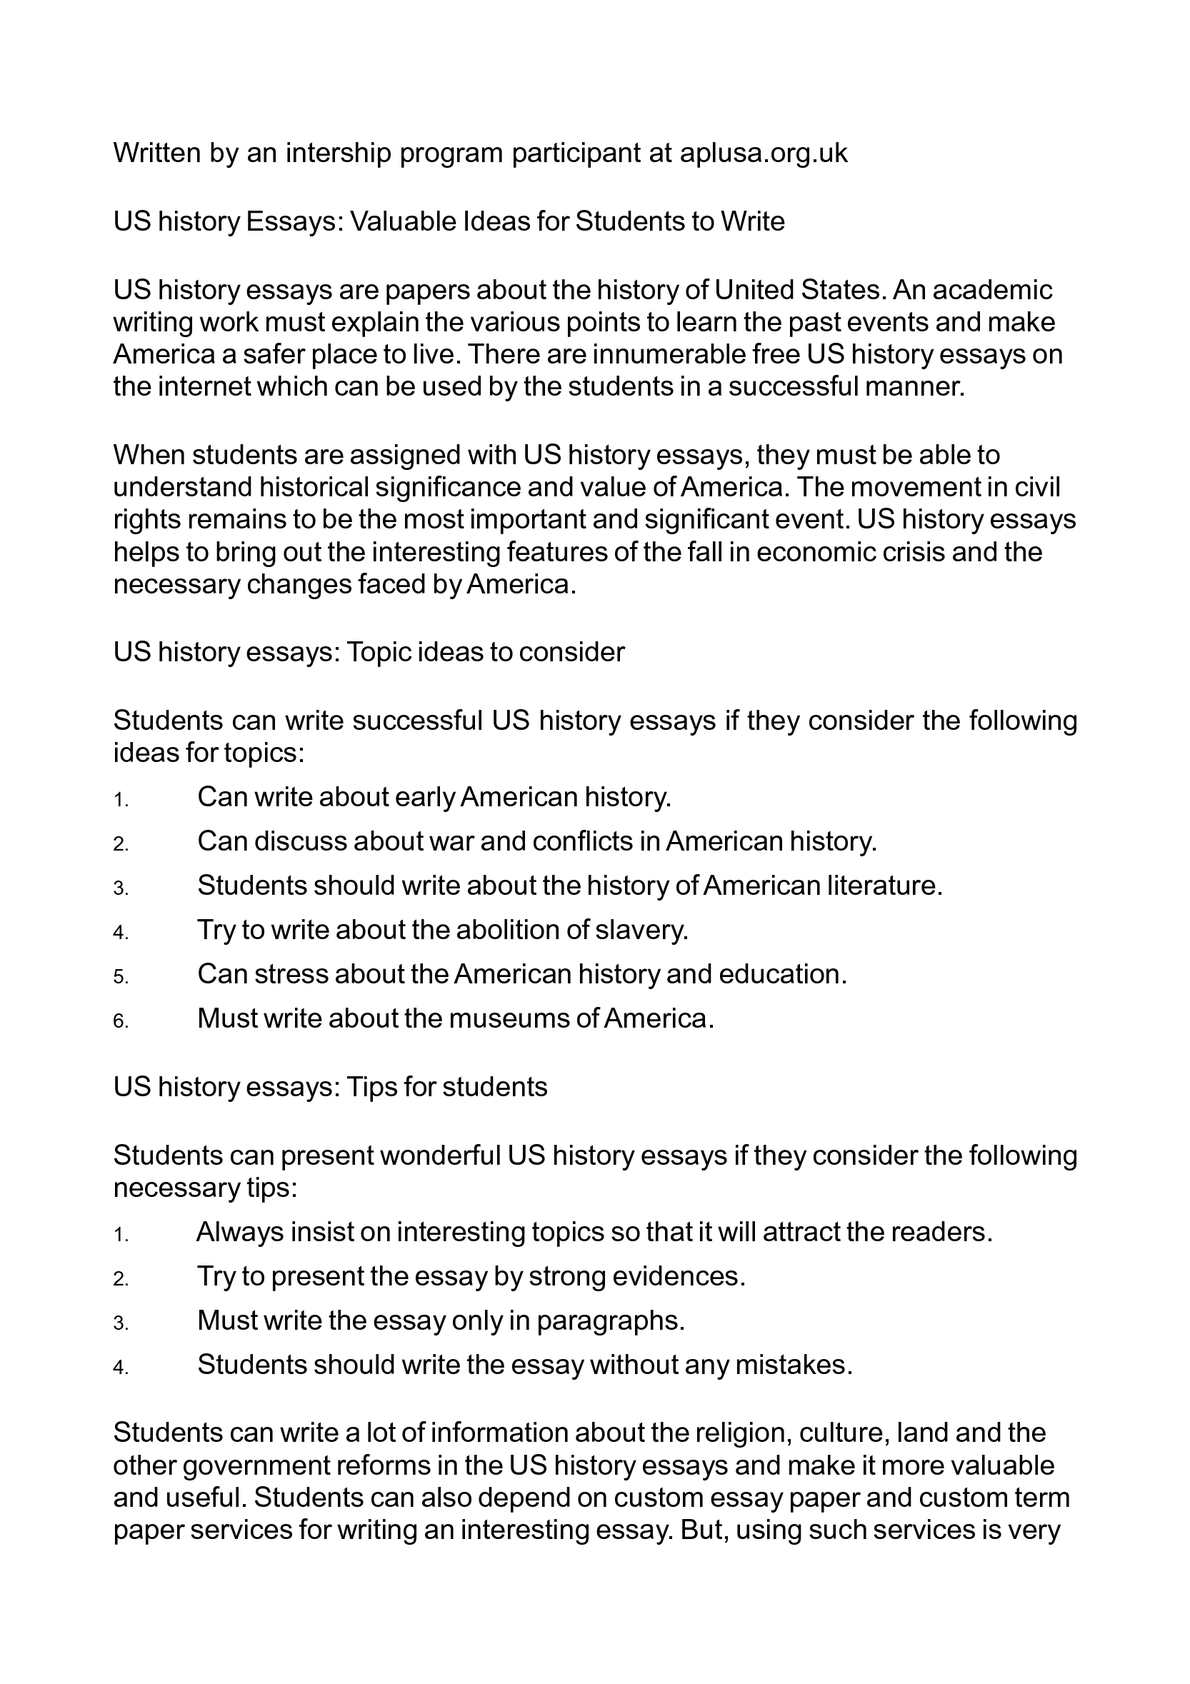 Best Essays In English  Causes Of The English Civil War Essay also Examples Of High School Essays Calamo  Us History Essays Valuable Ideas For Students To Write Thesis Statement For An Argumentative Essay